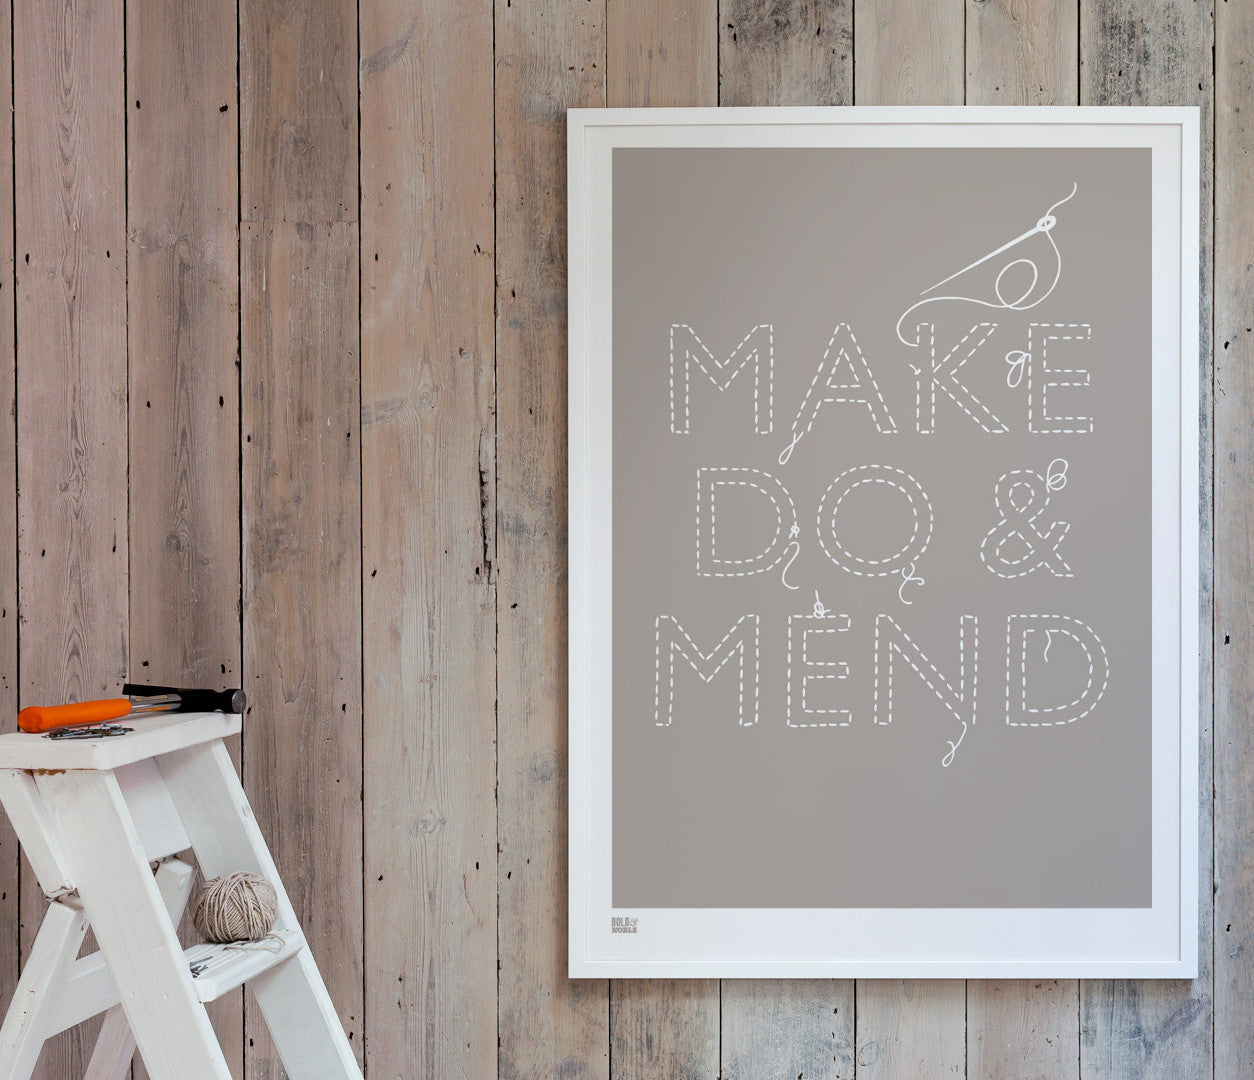 'Make Do and Mend' Art Print in Warm Stone